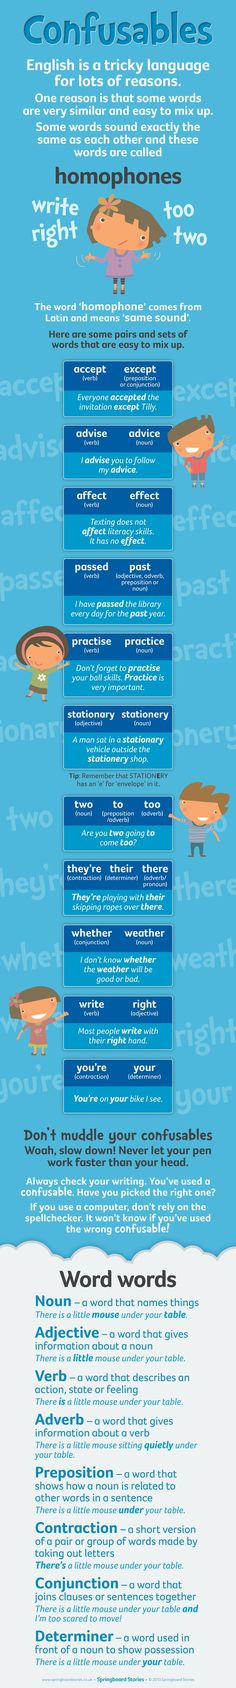 Great #infographic on homophones #engchat